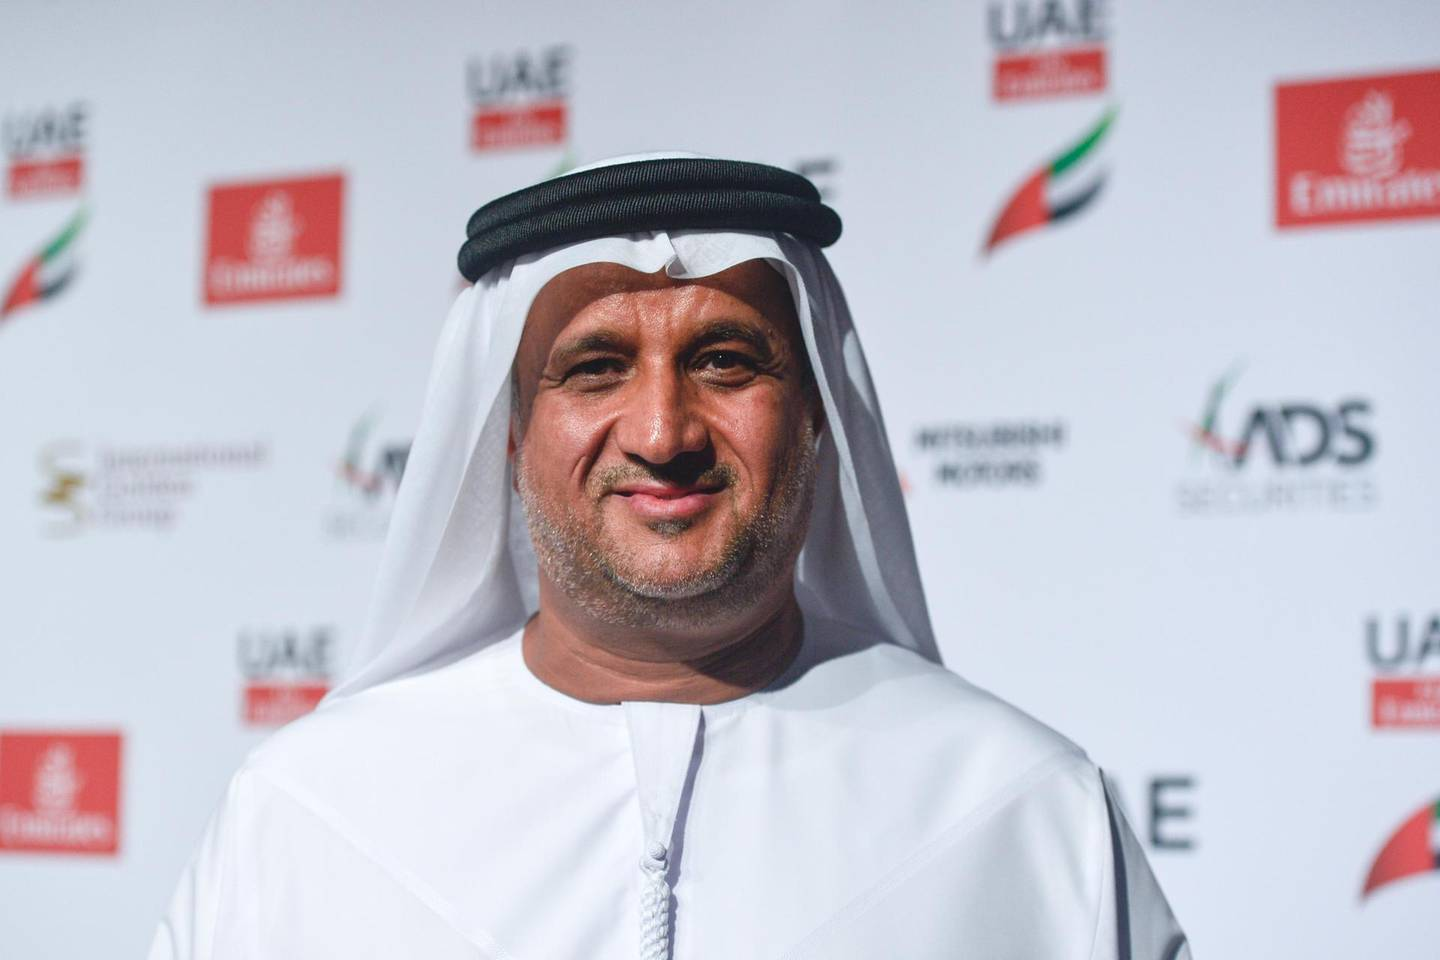 Matar Suhail Al Yabhouni Al Dhaheri, the President of the UAE Team Emirates, the UAEs first-ever professional cycling team, unveiled today a new name, logo, team kit, and three new sponsors: Emirates, Abu Dhabi Securities and International Golden Group.On Tuesday, February 21, 2017, in Crowne Plaza Yas Island, Abu Dhabi, United Arab Emirates. (Photo by Artur Widak/NurPhoto via Getty Images)